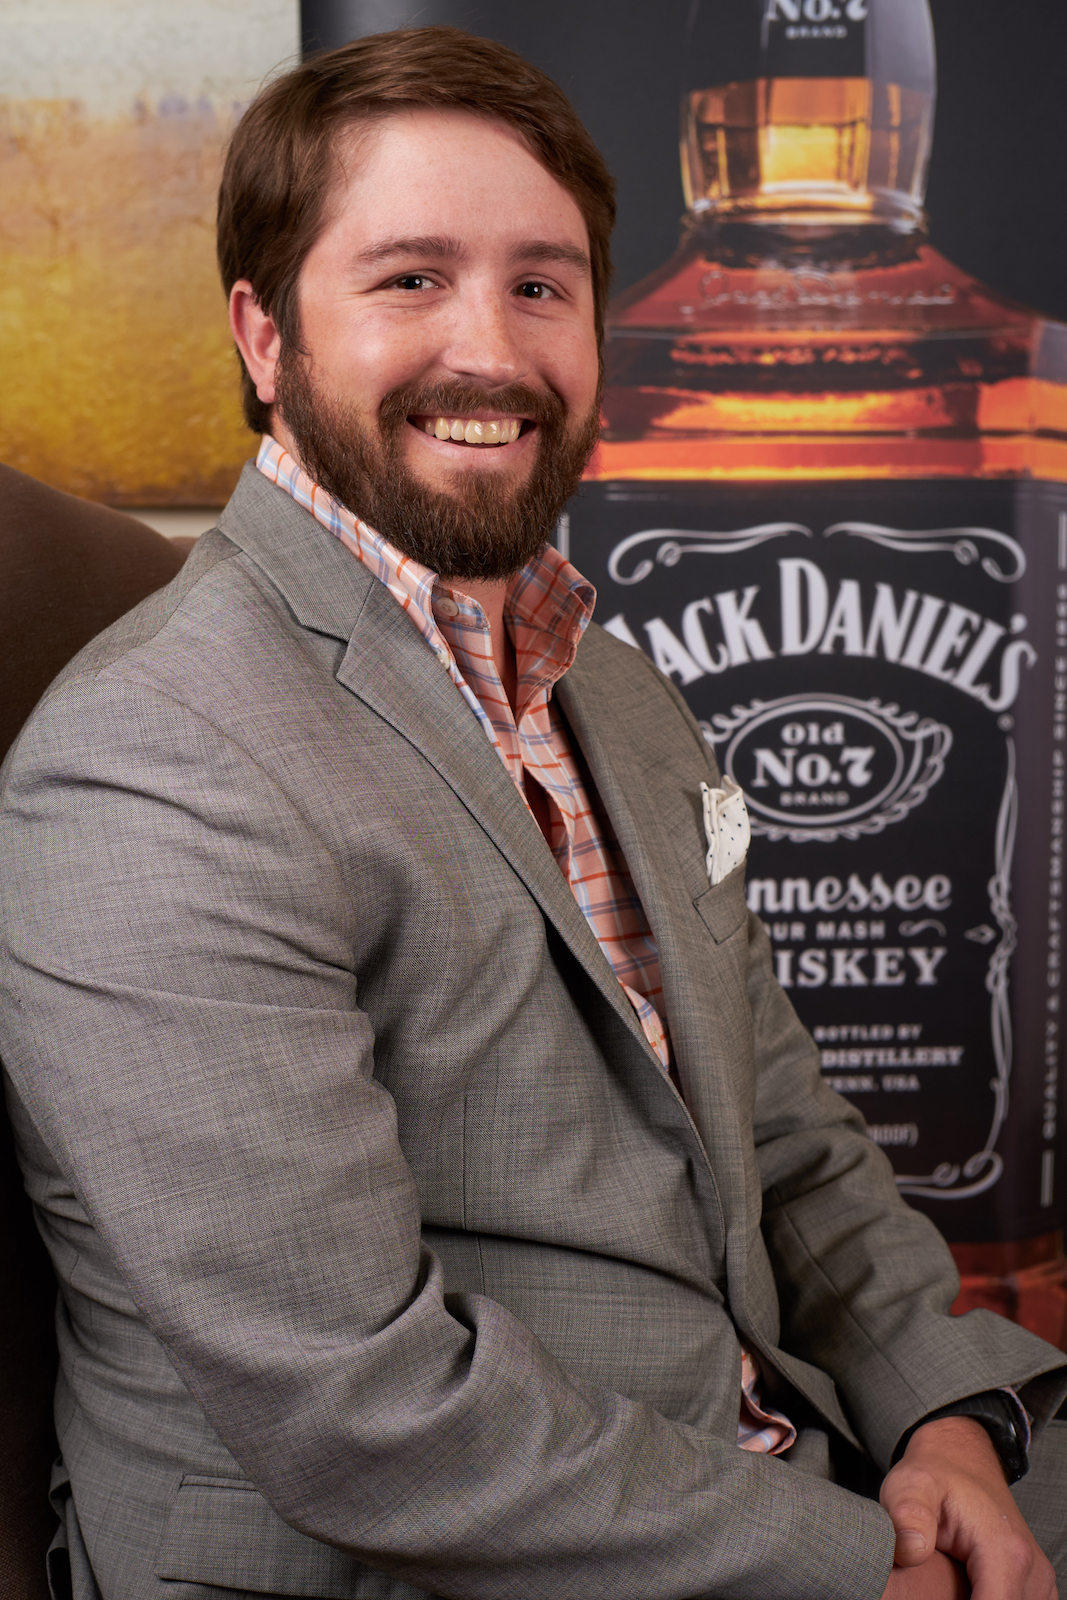 Corporate Head Shots in Knoxville